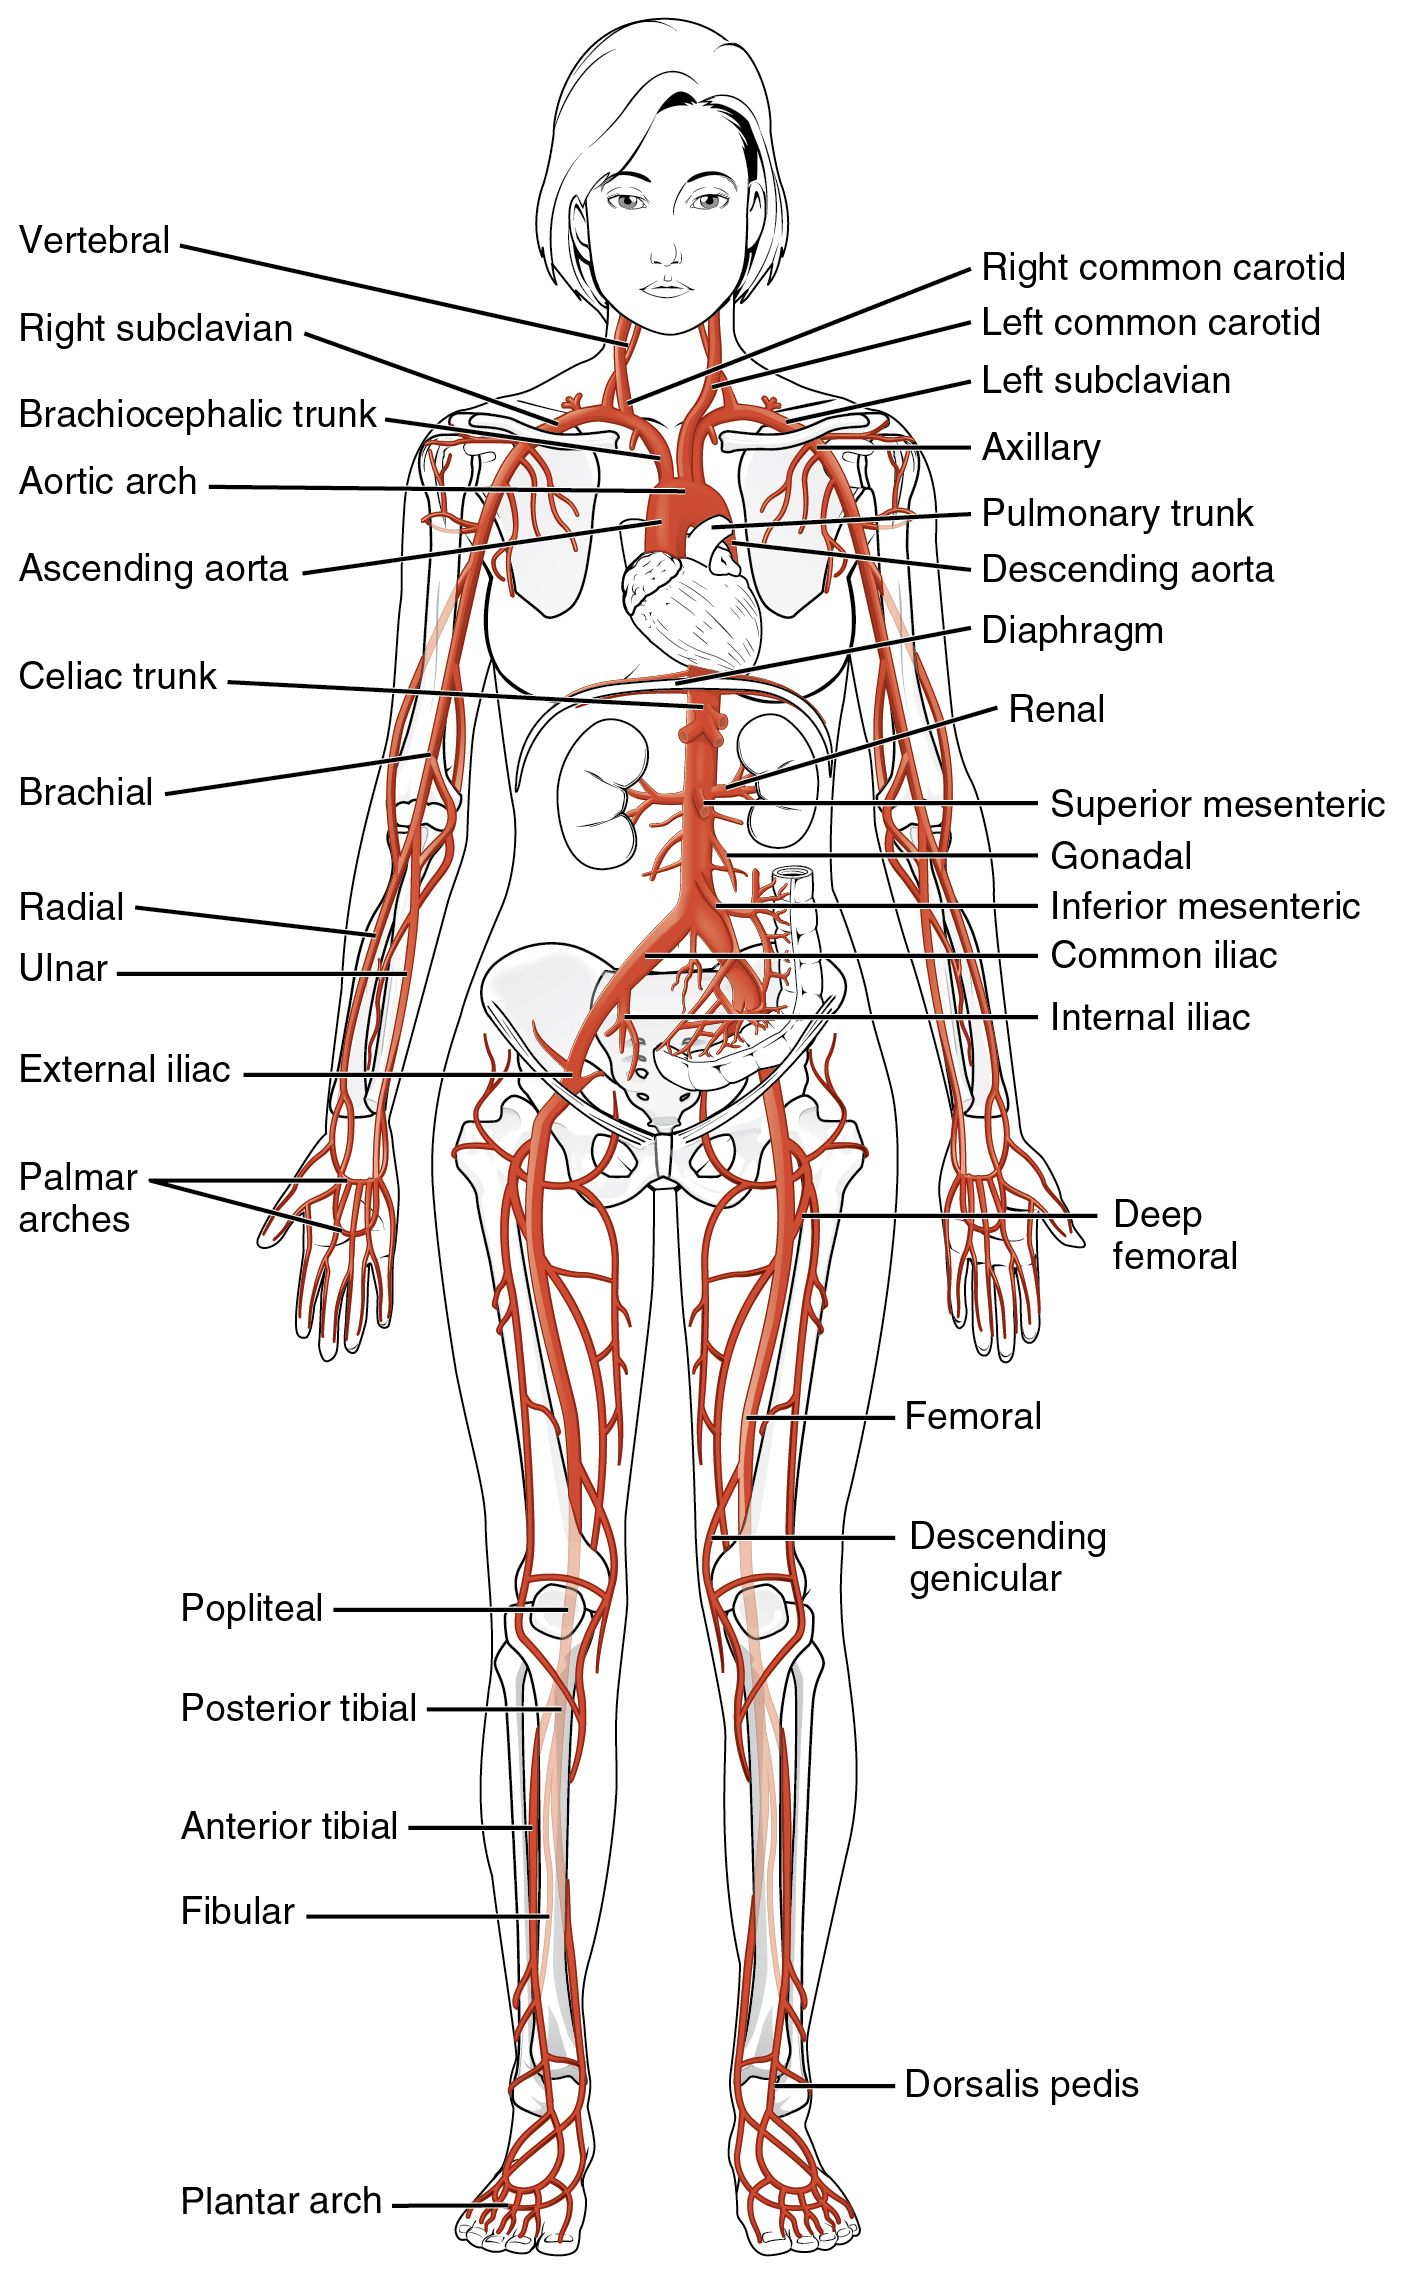 This diagrams shows the major arteries in the human body ...